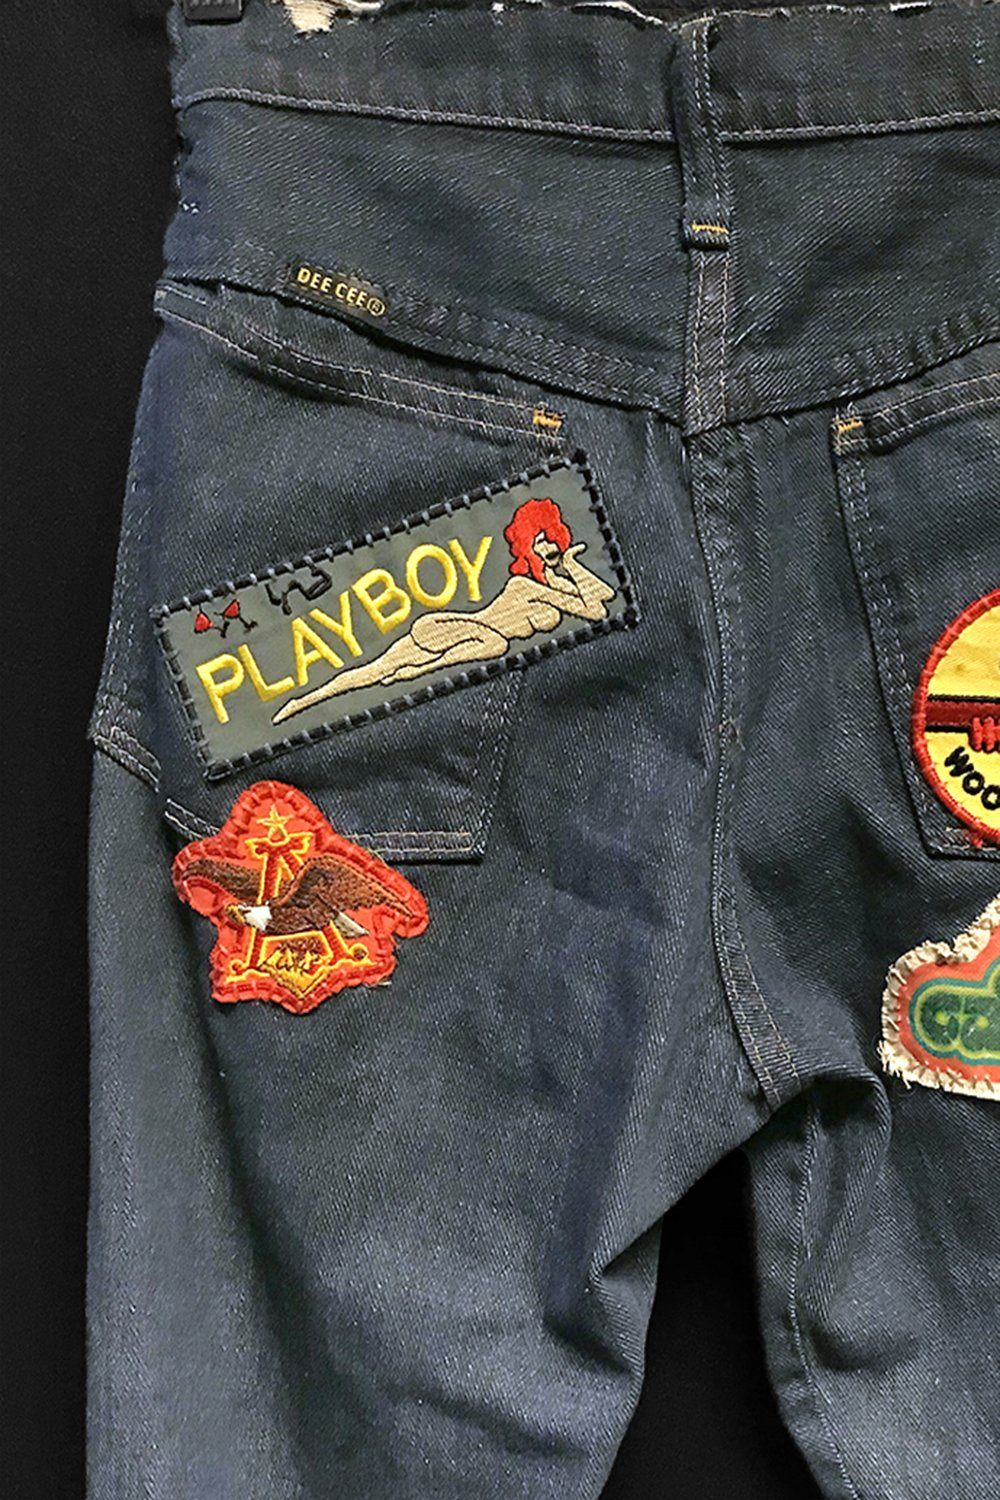 Vintage PLAYBOY Vietnam Liberty Cuff Patches, Patches/Pins, BACKBITE, BACKBITE